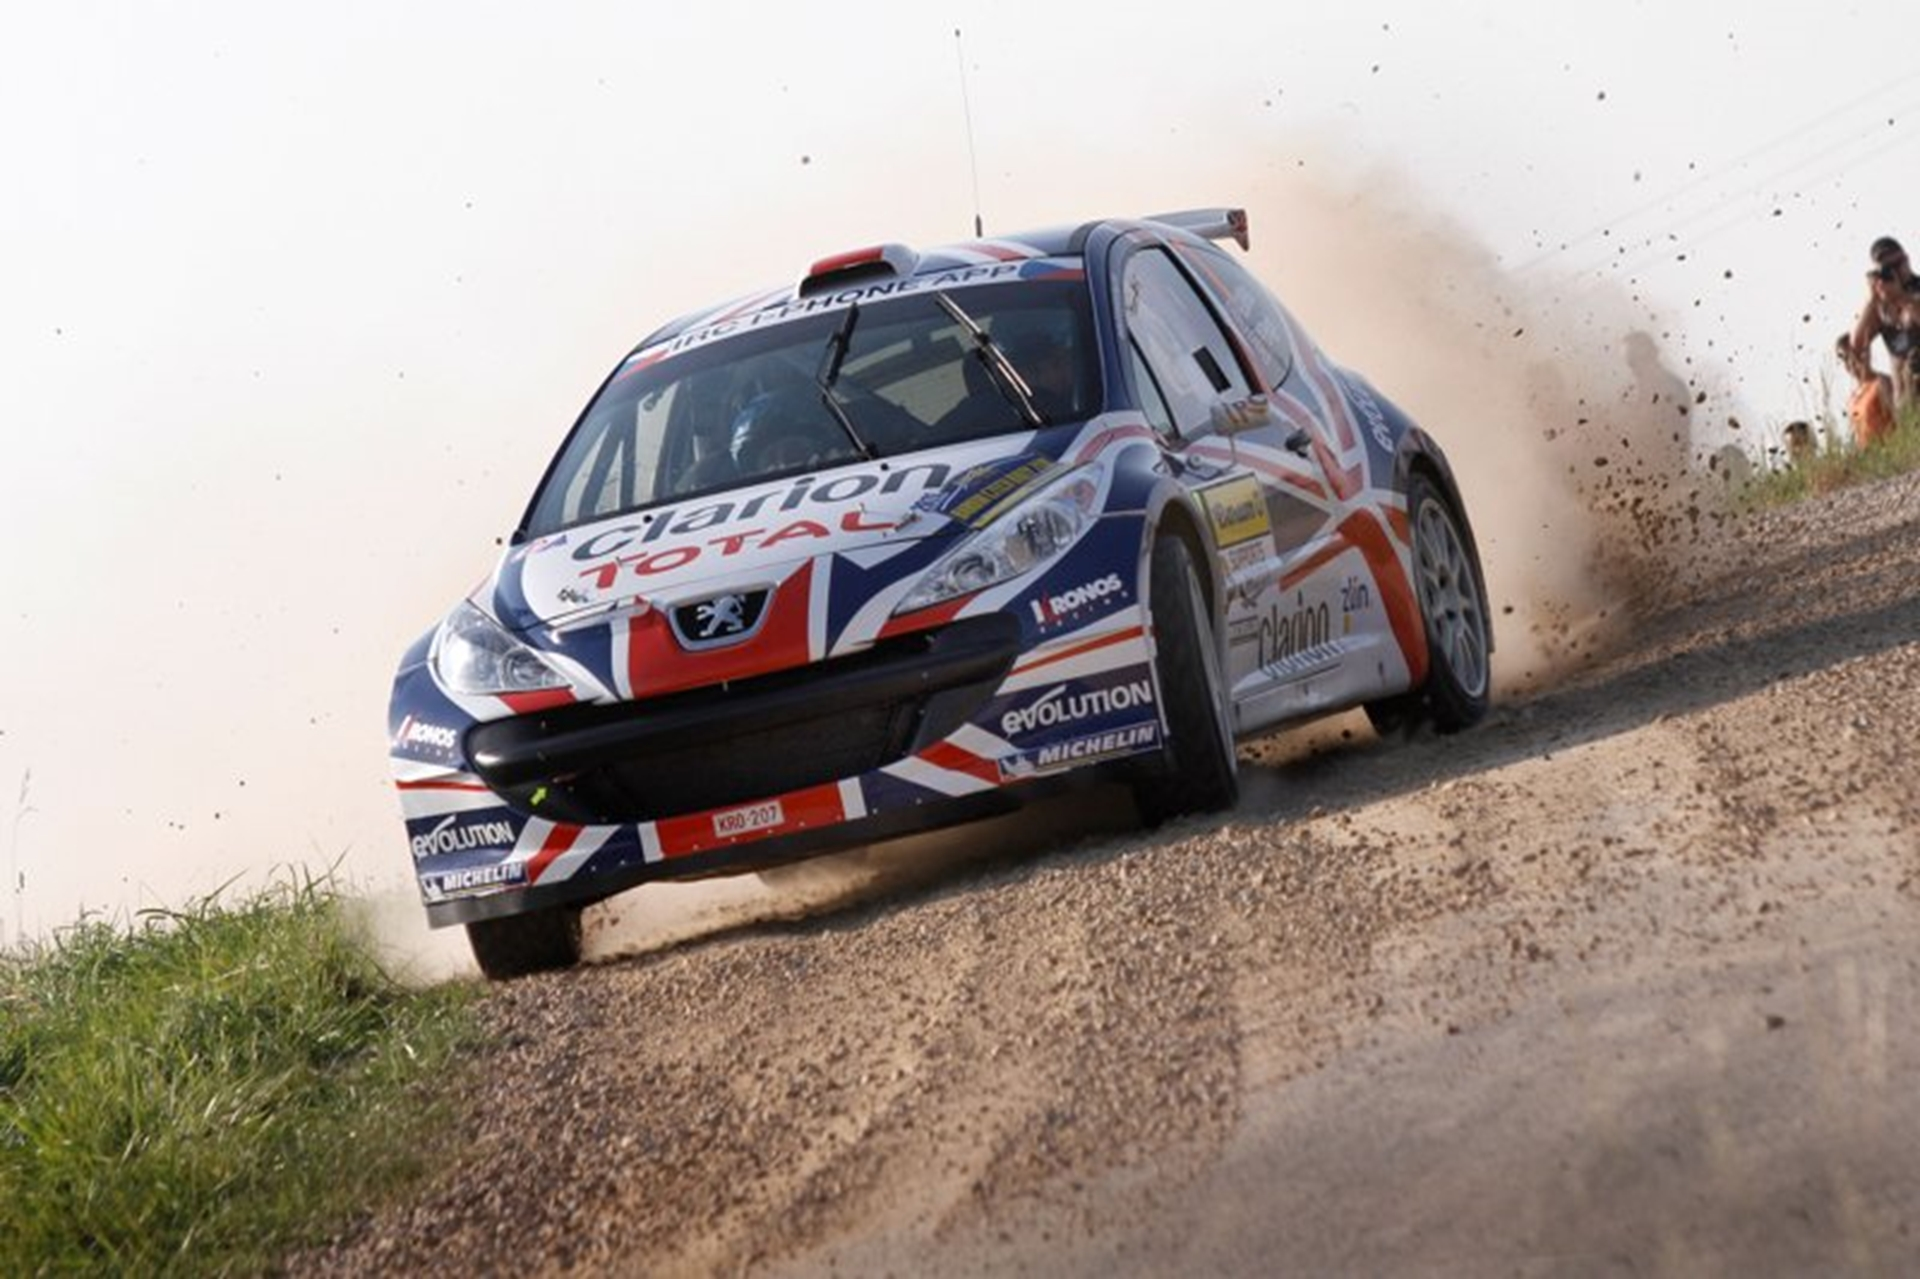 Peugeot Rally 2011 Racing Action